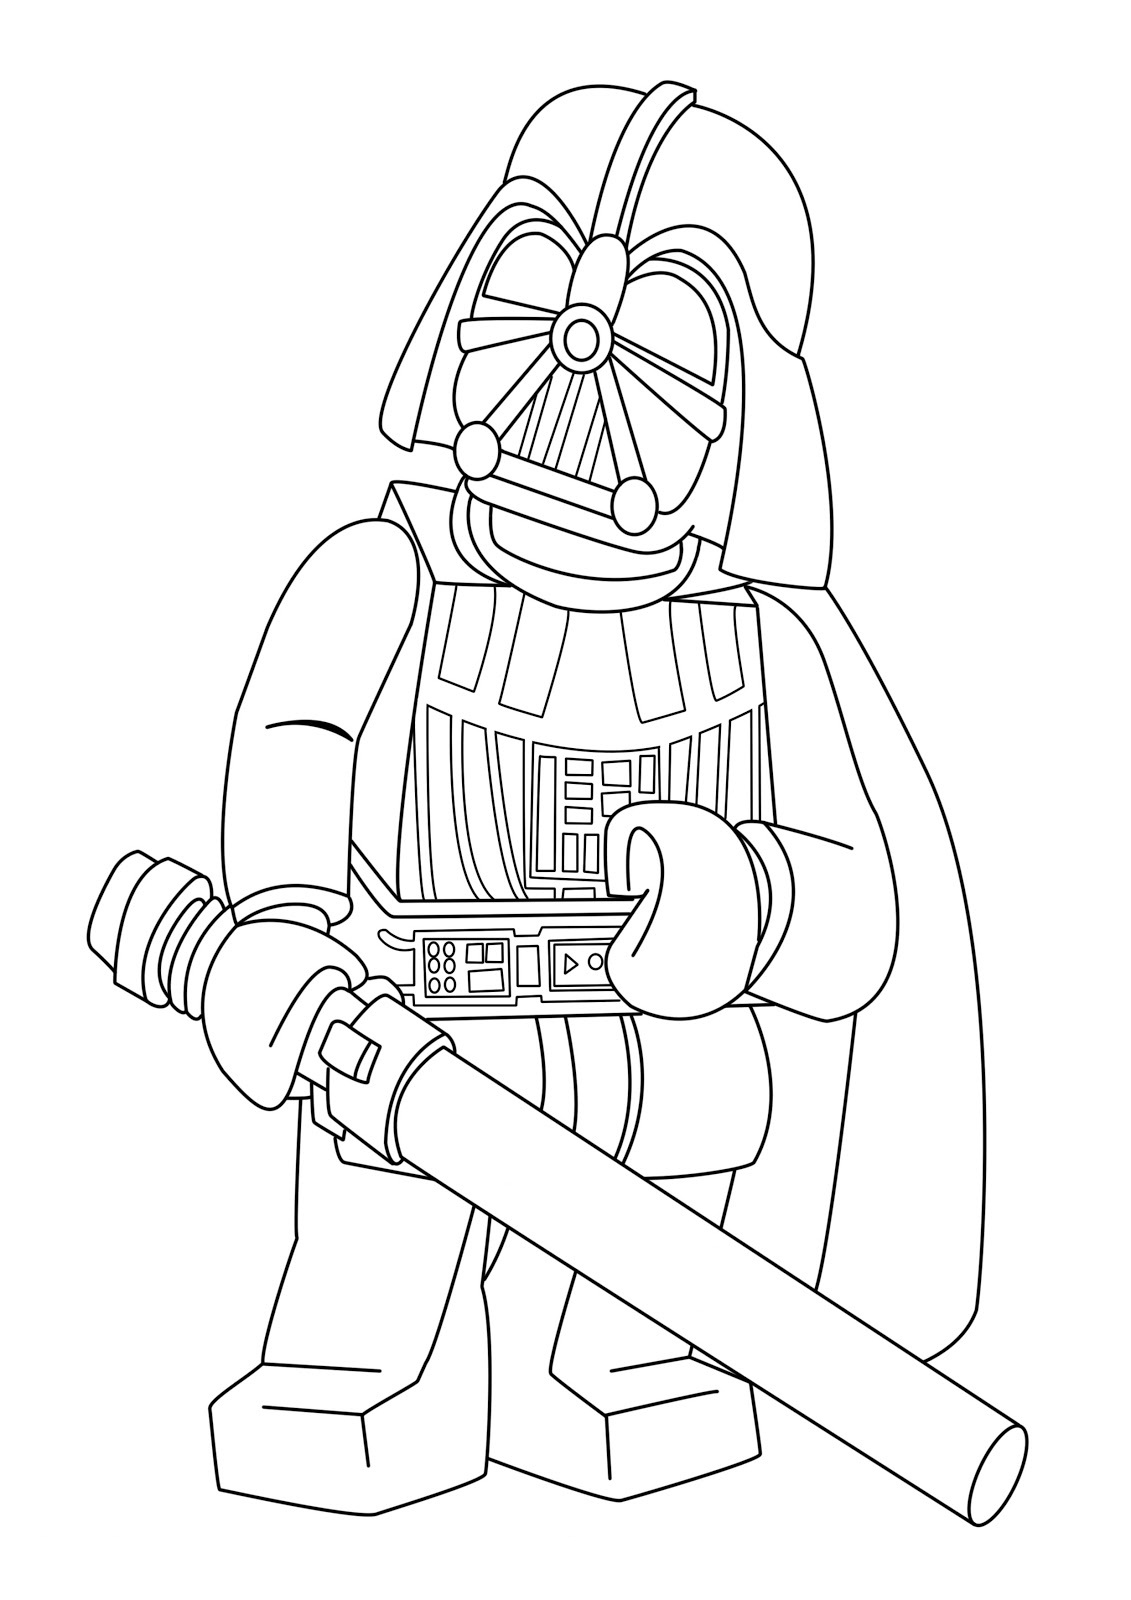 War Coloring Pages Free - Master Coloring Pages